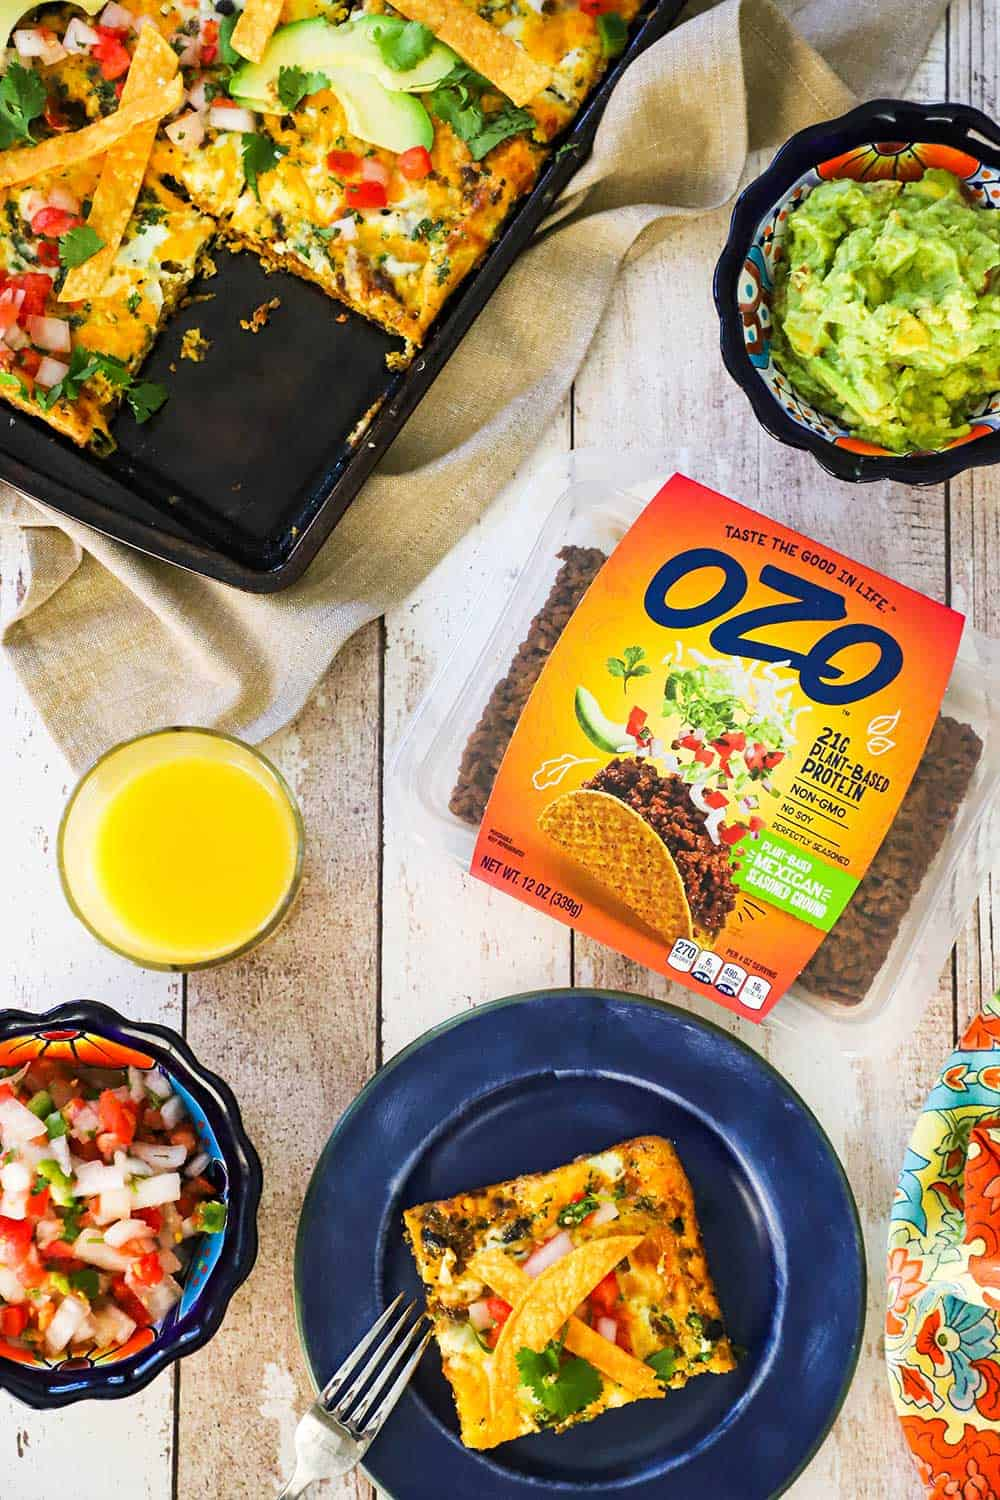 A blue plate with a slice of Mexican frittata on it sitting next to a package of OZO plant-based Mexican ground and a glass of orange juice.